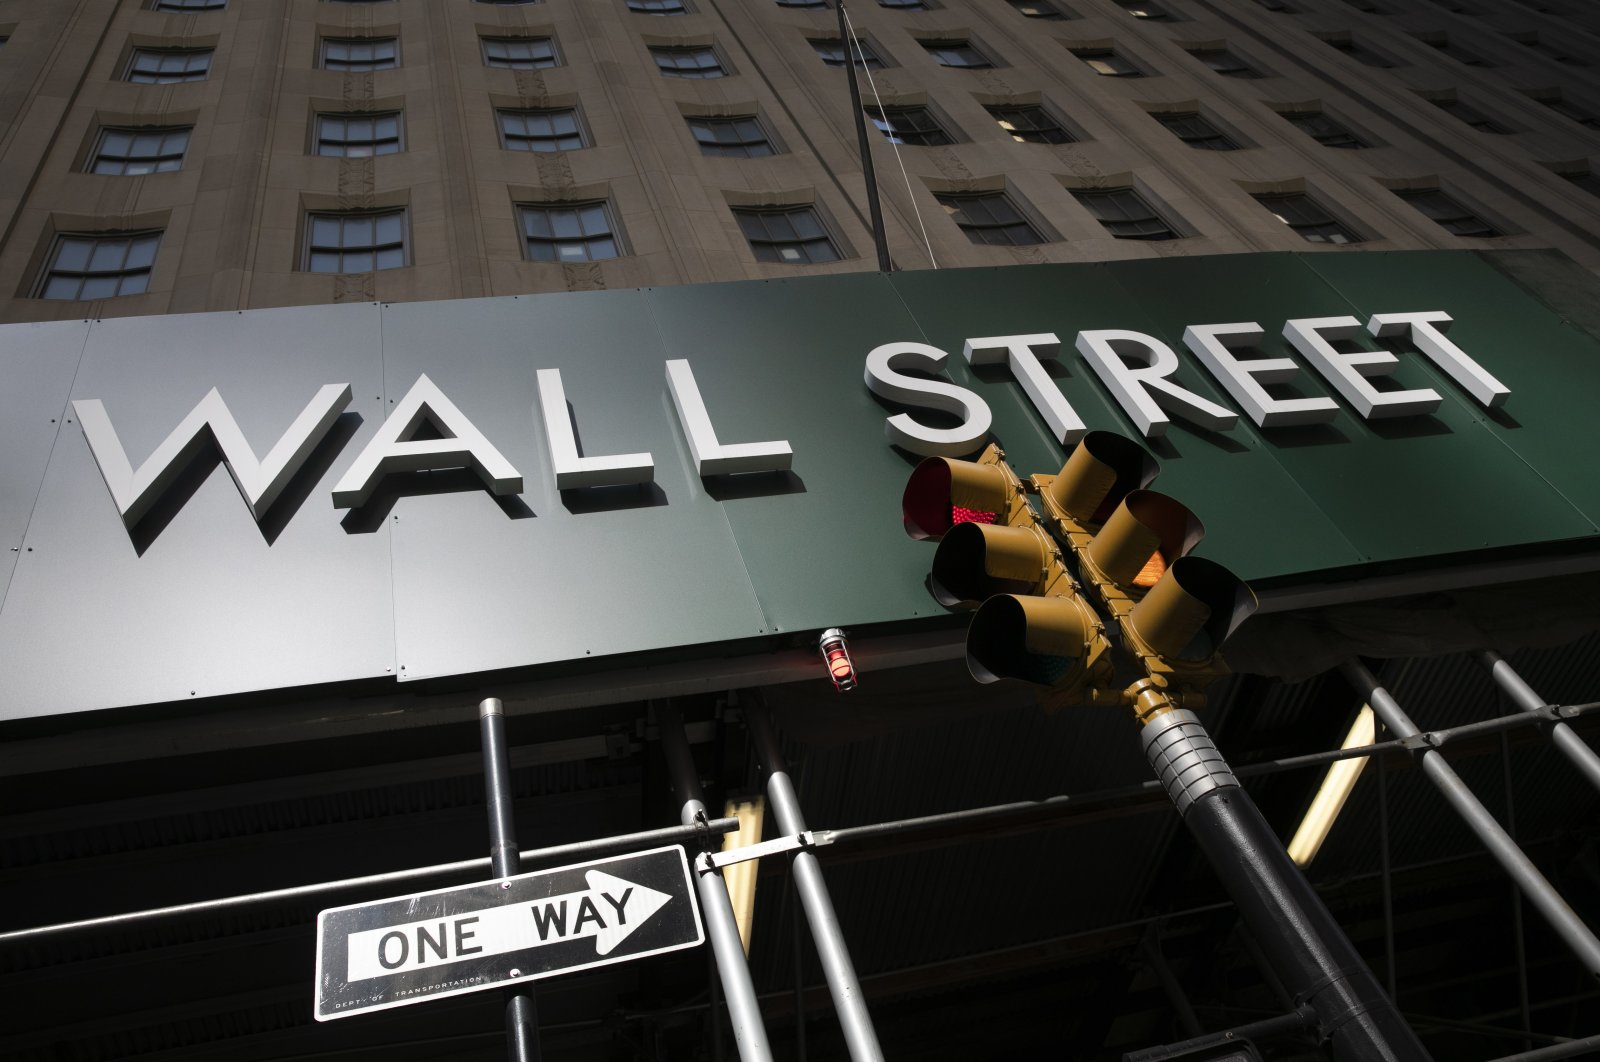 A sign for a Wall Street building is shown in New York, United States, June 16, 2020. (AP Photo)